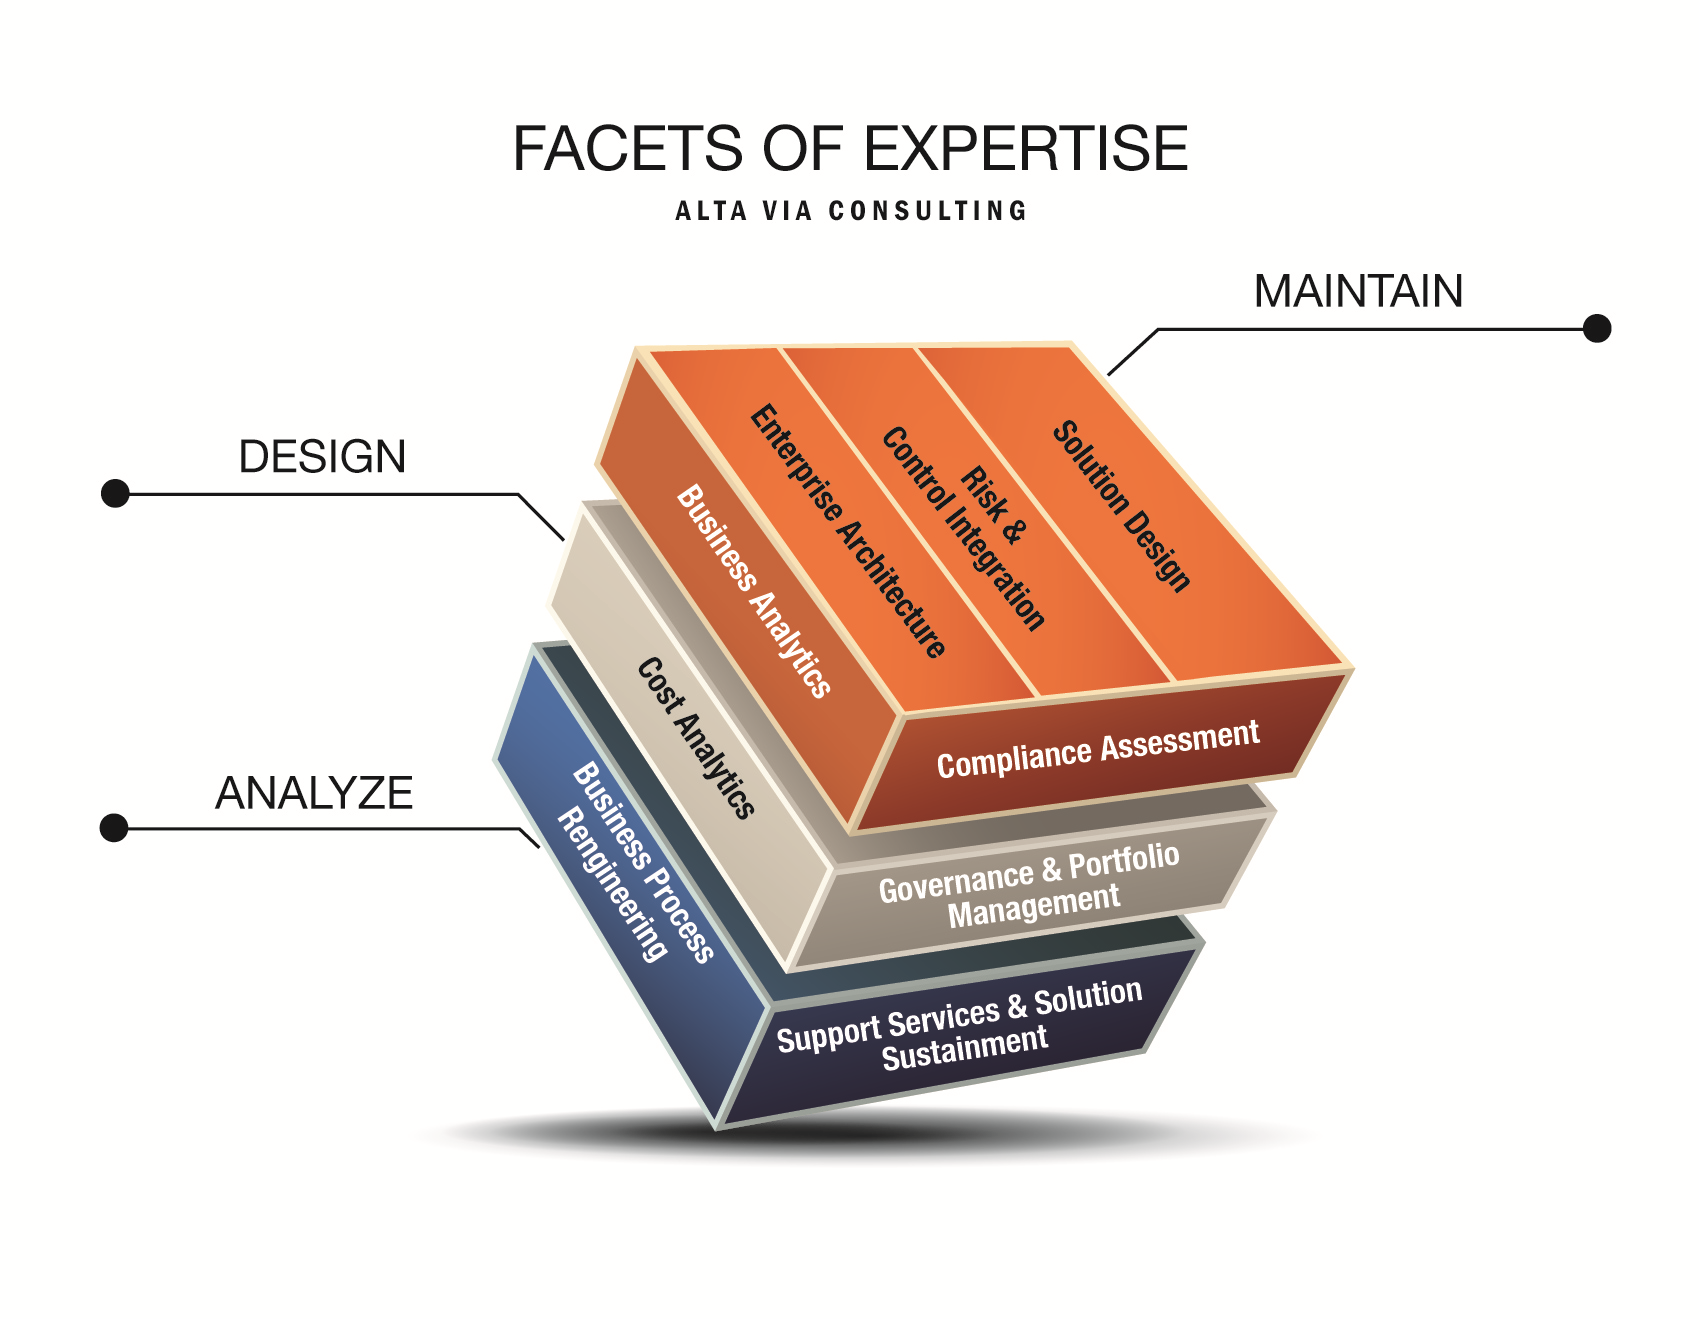 Alta Via Consulting Expertise Model